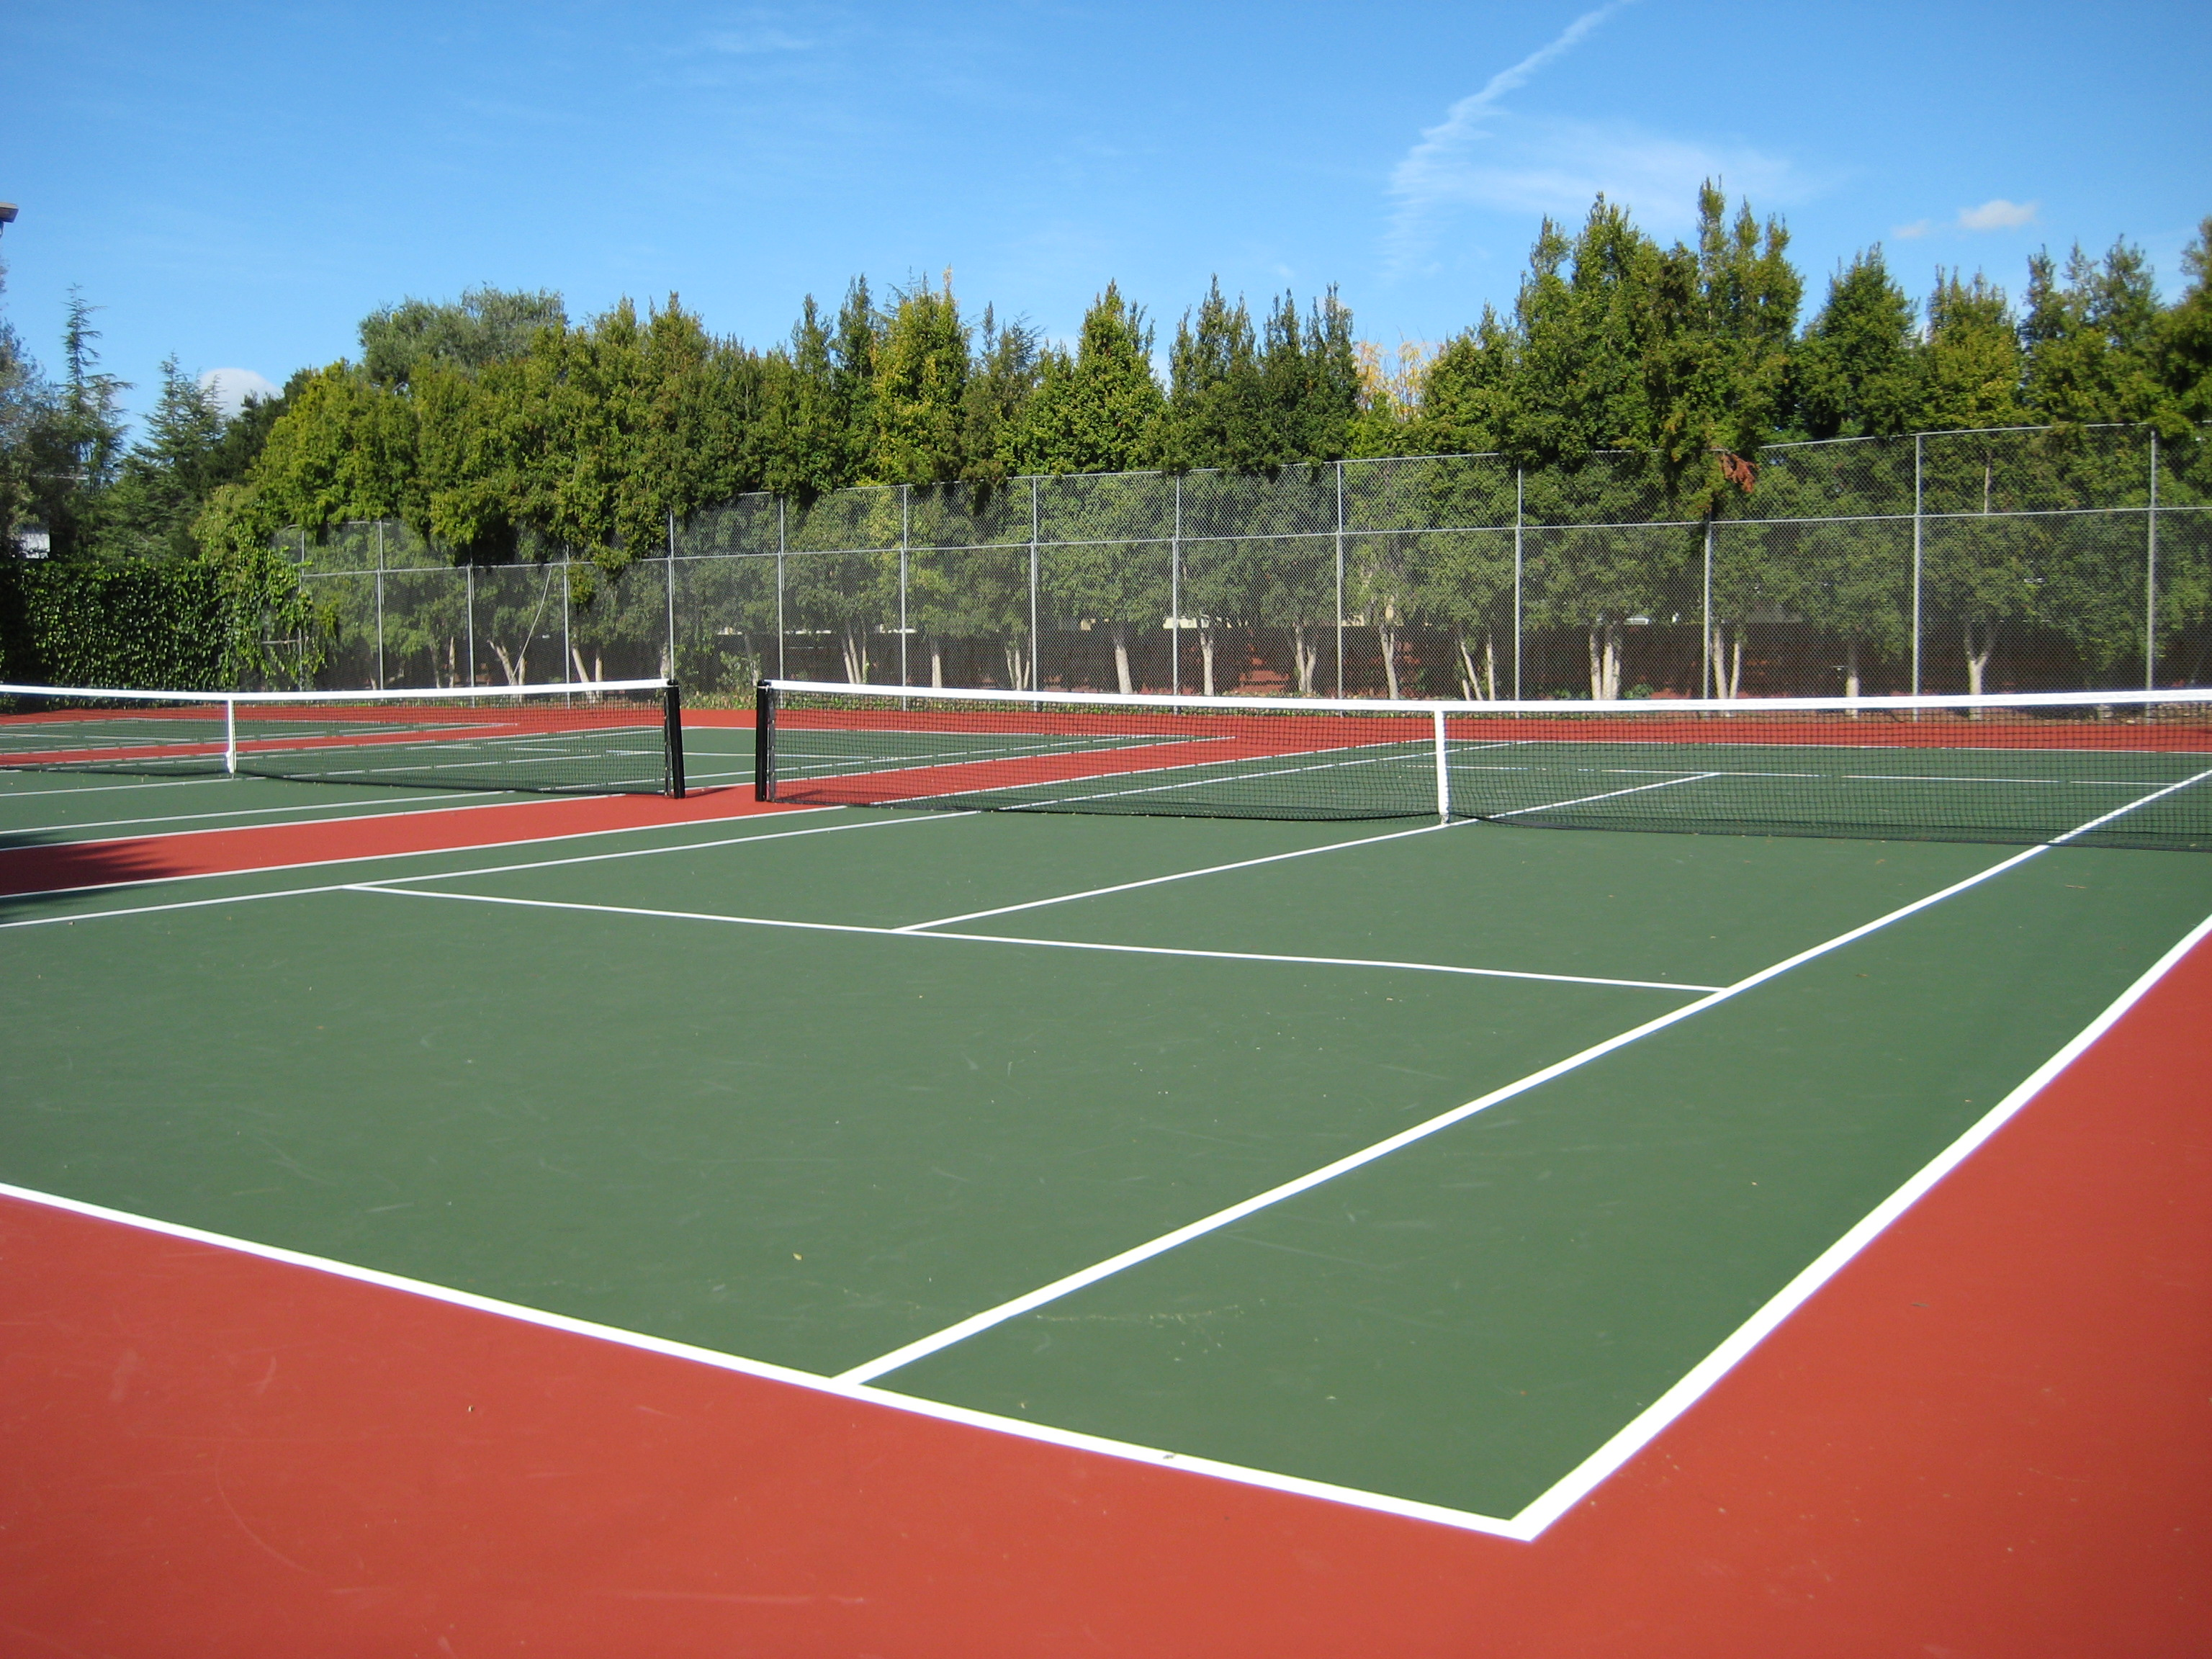 Working on my serve – Blue Batting Helmet Pictures Of Courts